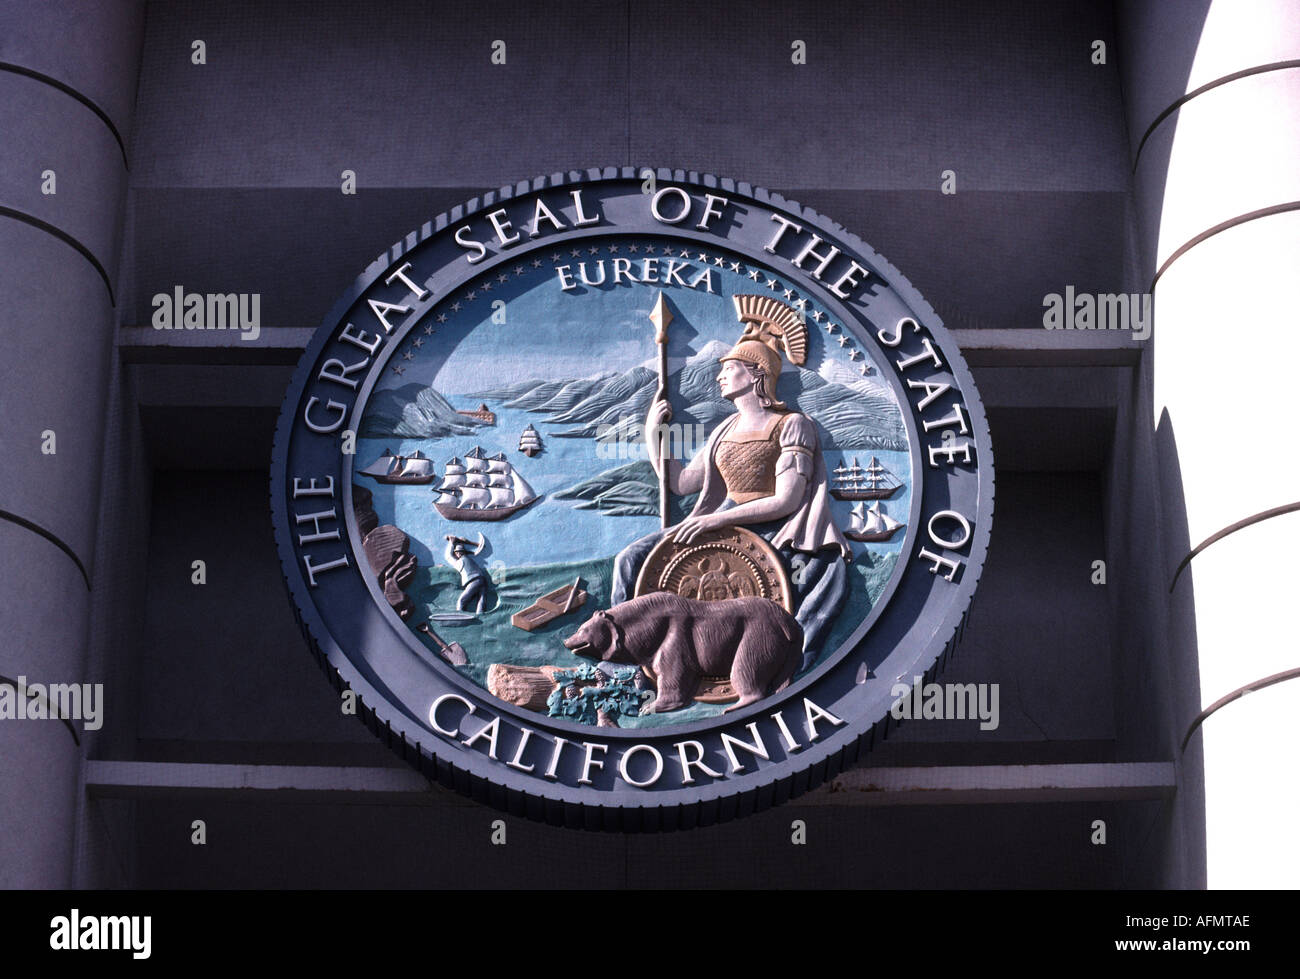 24875b the great seal of the state of california state building 24875b the great seal of the state of california state building san francisco california usa symbol sign government his buycottarizona